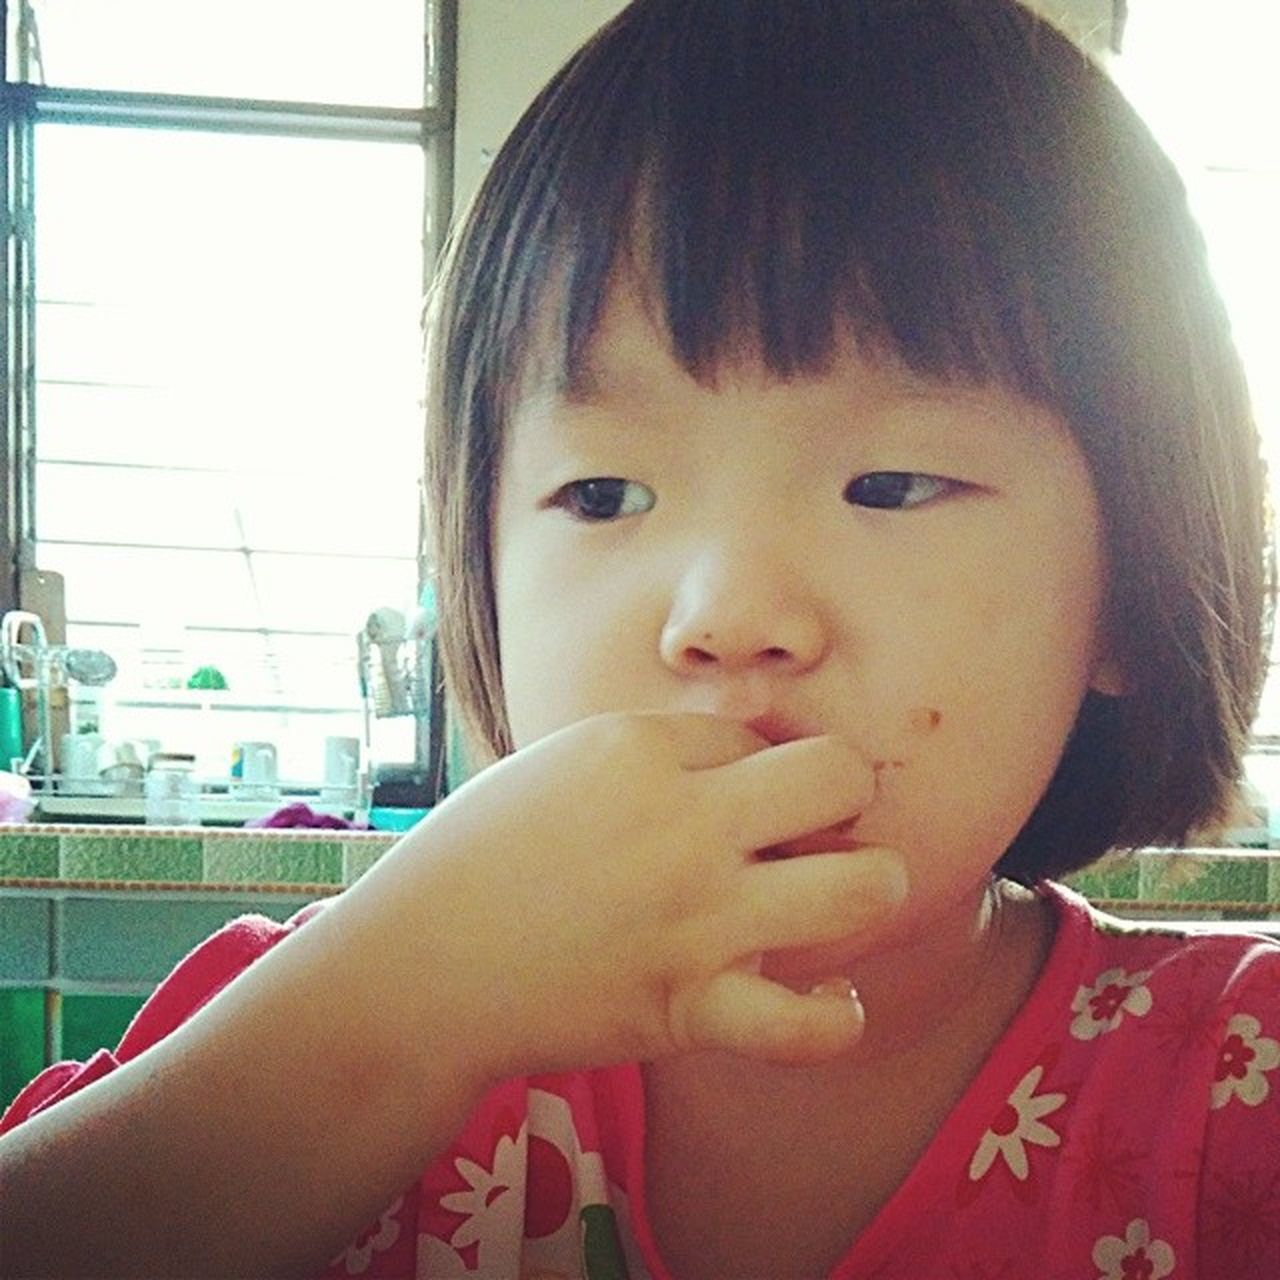 Asian  Chinese Little Girl Cute Kid Messy Eating Face